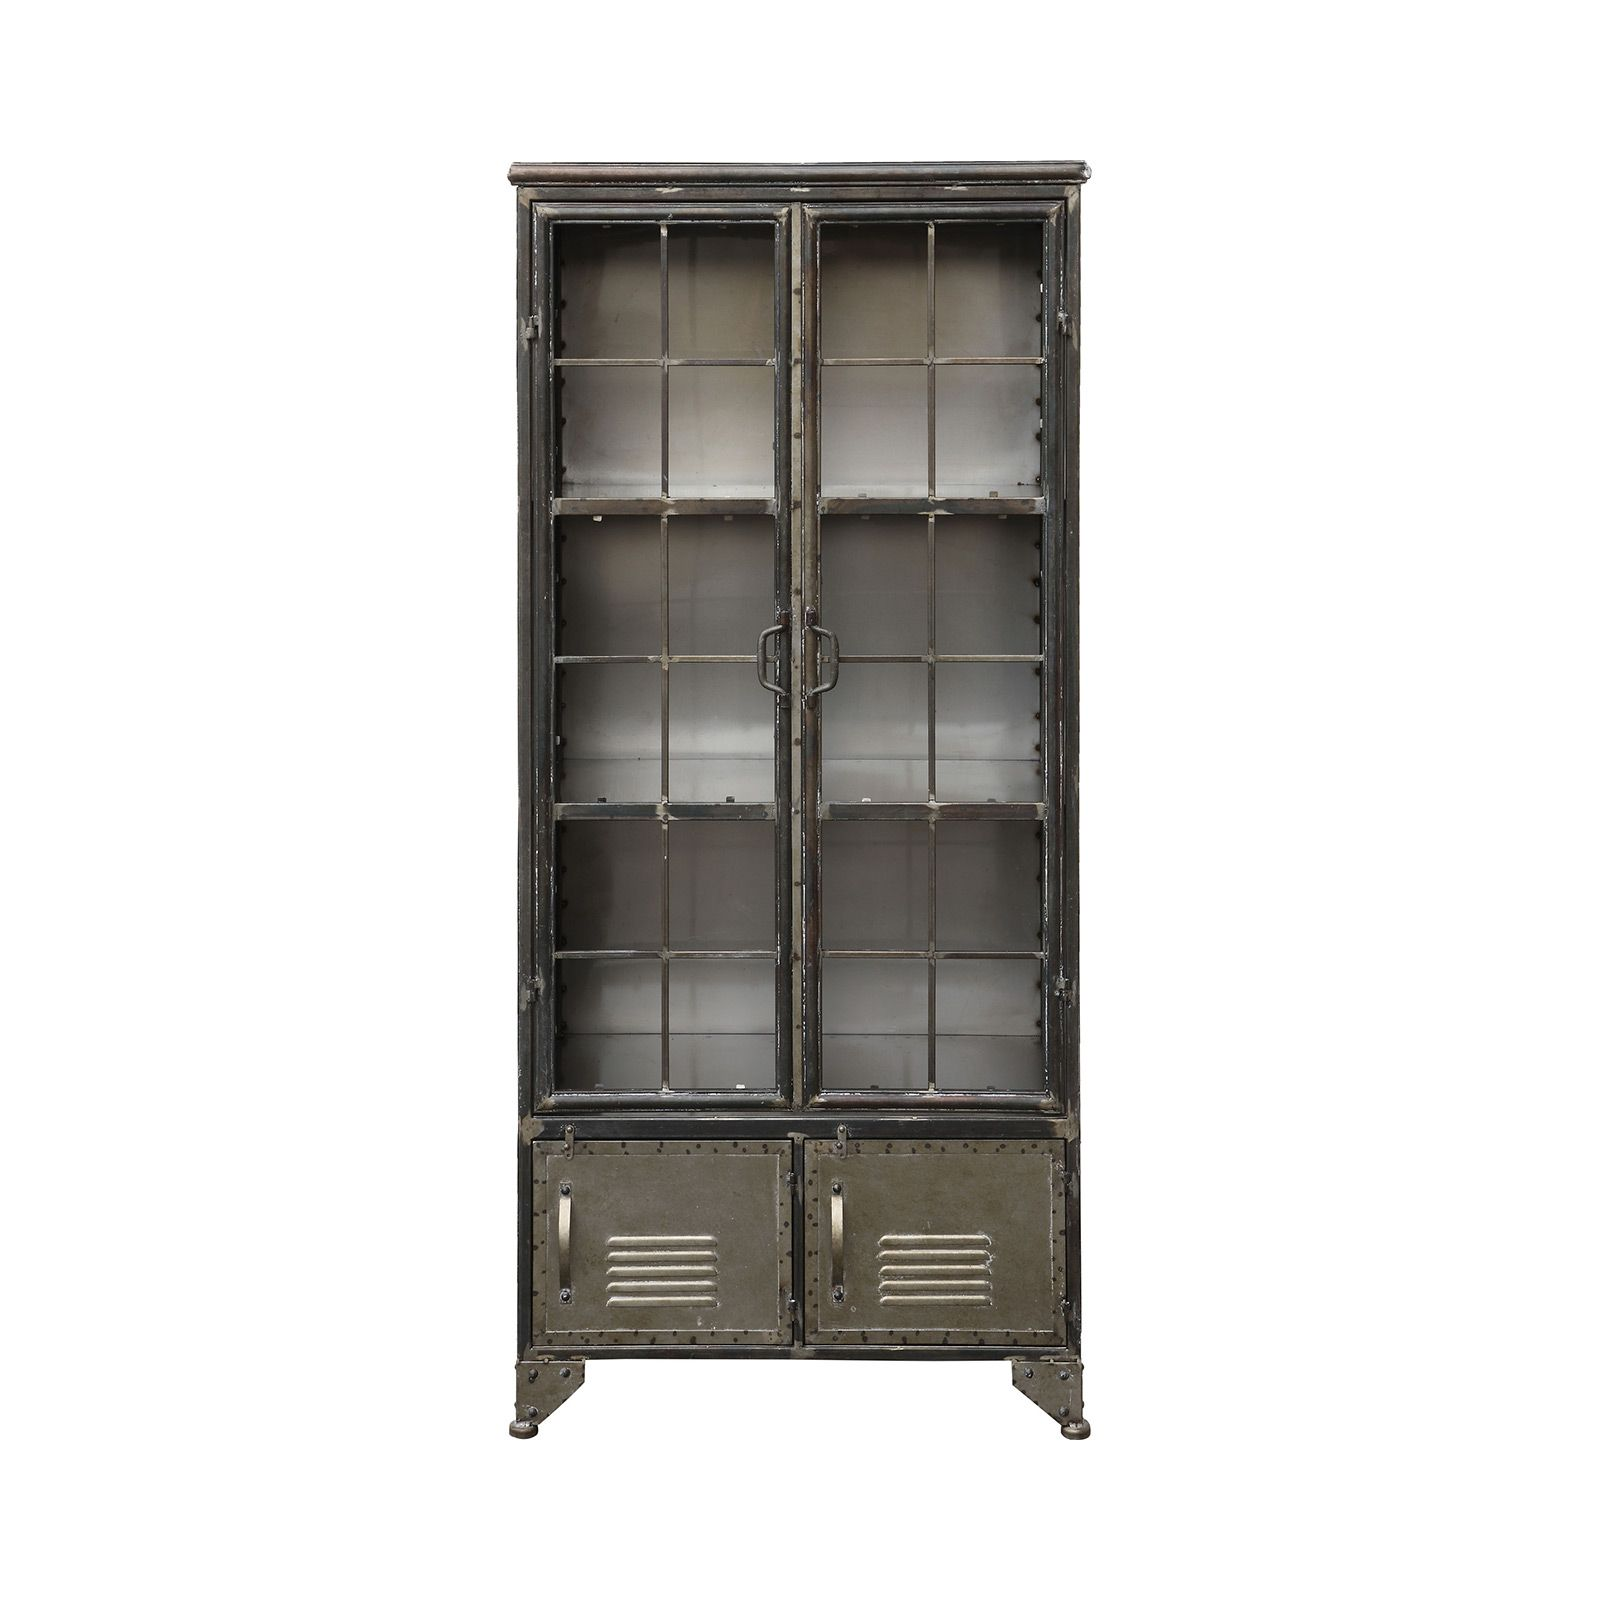 Decorative Industrial Shelving If Youre Serious About Diving In To An Industrial Themed